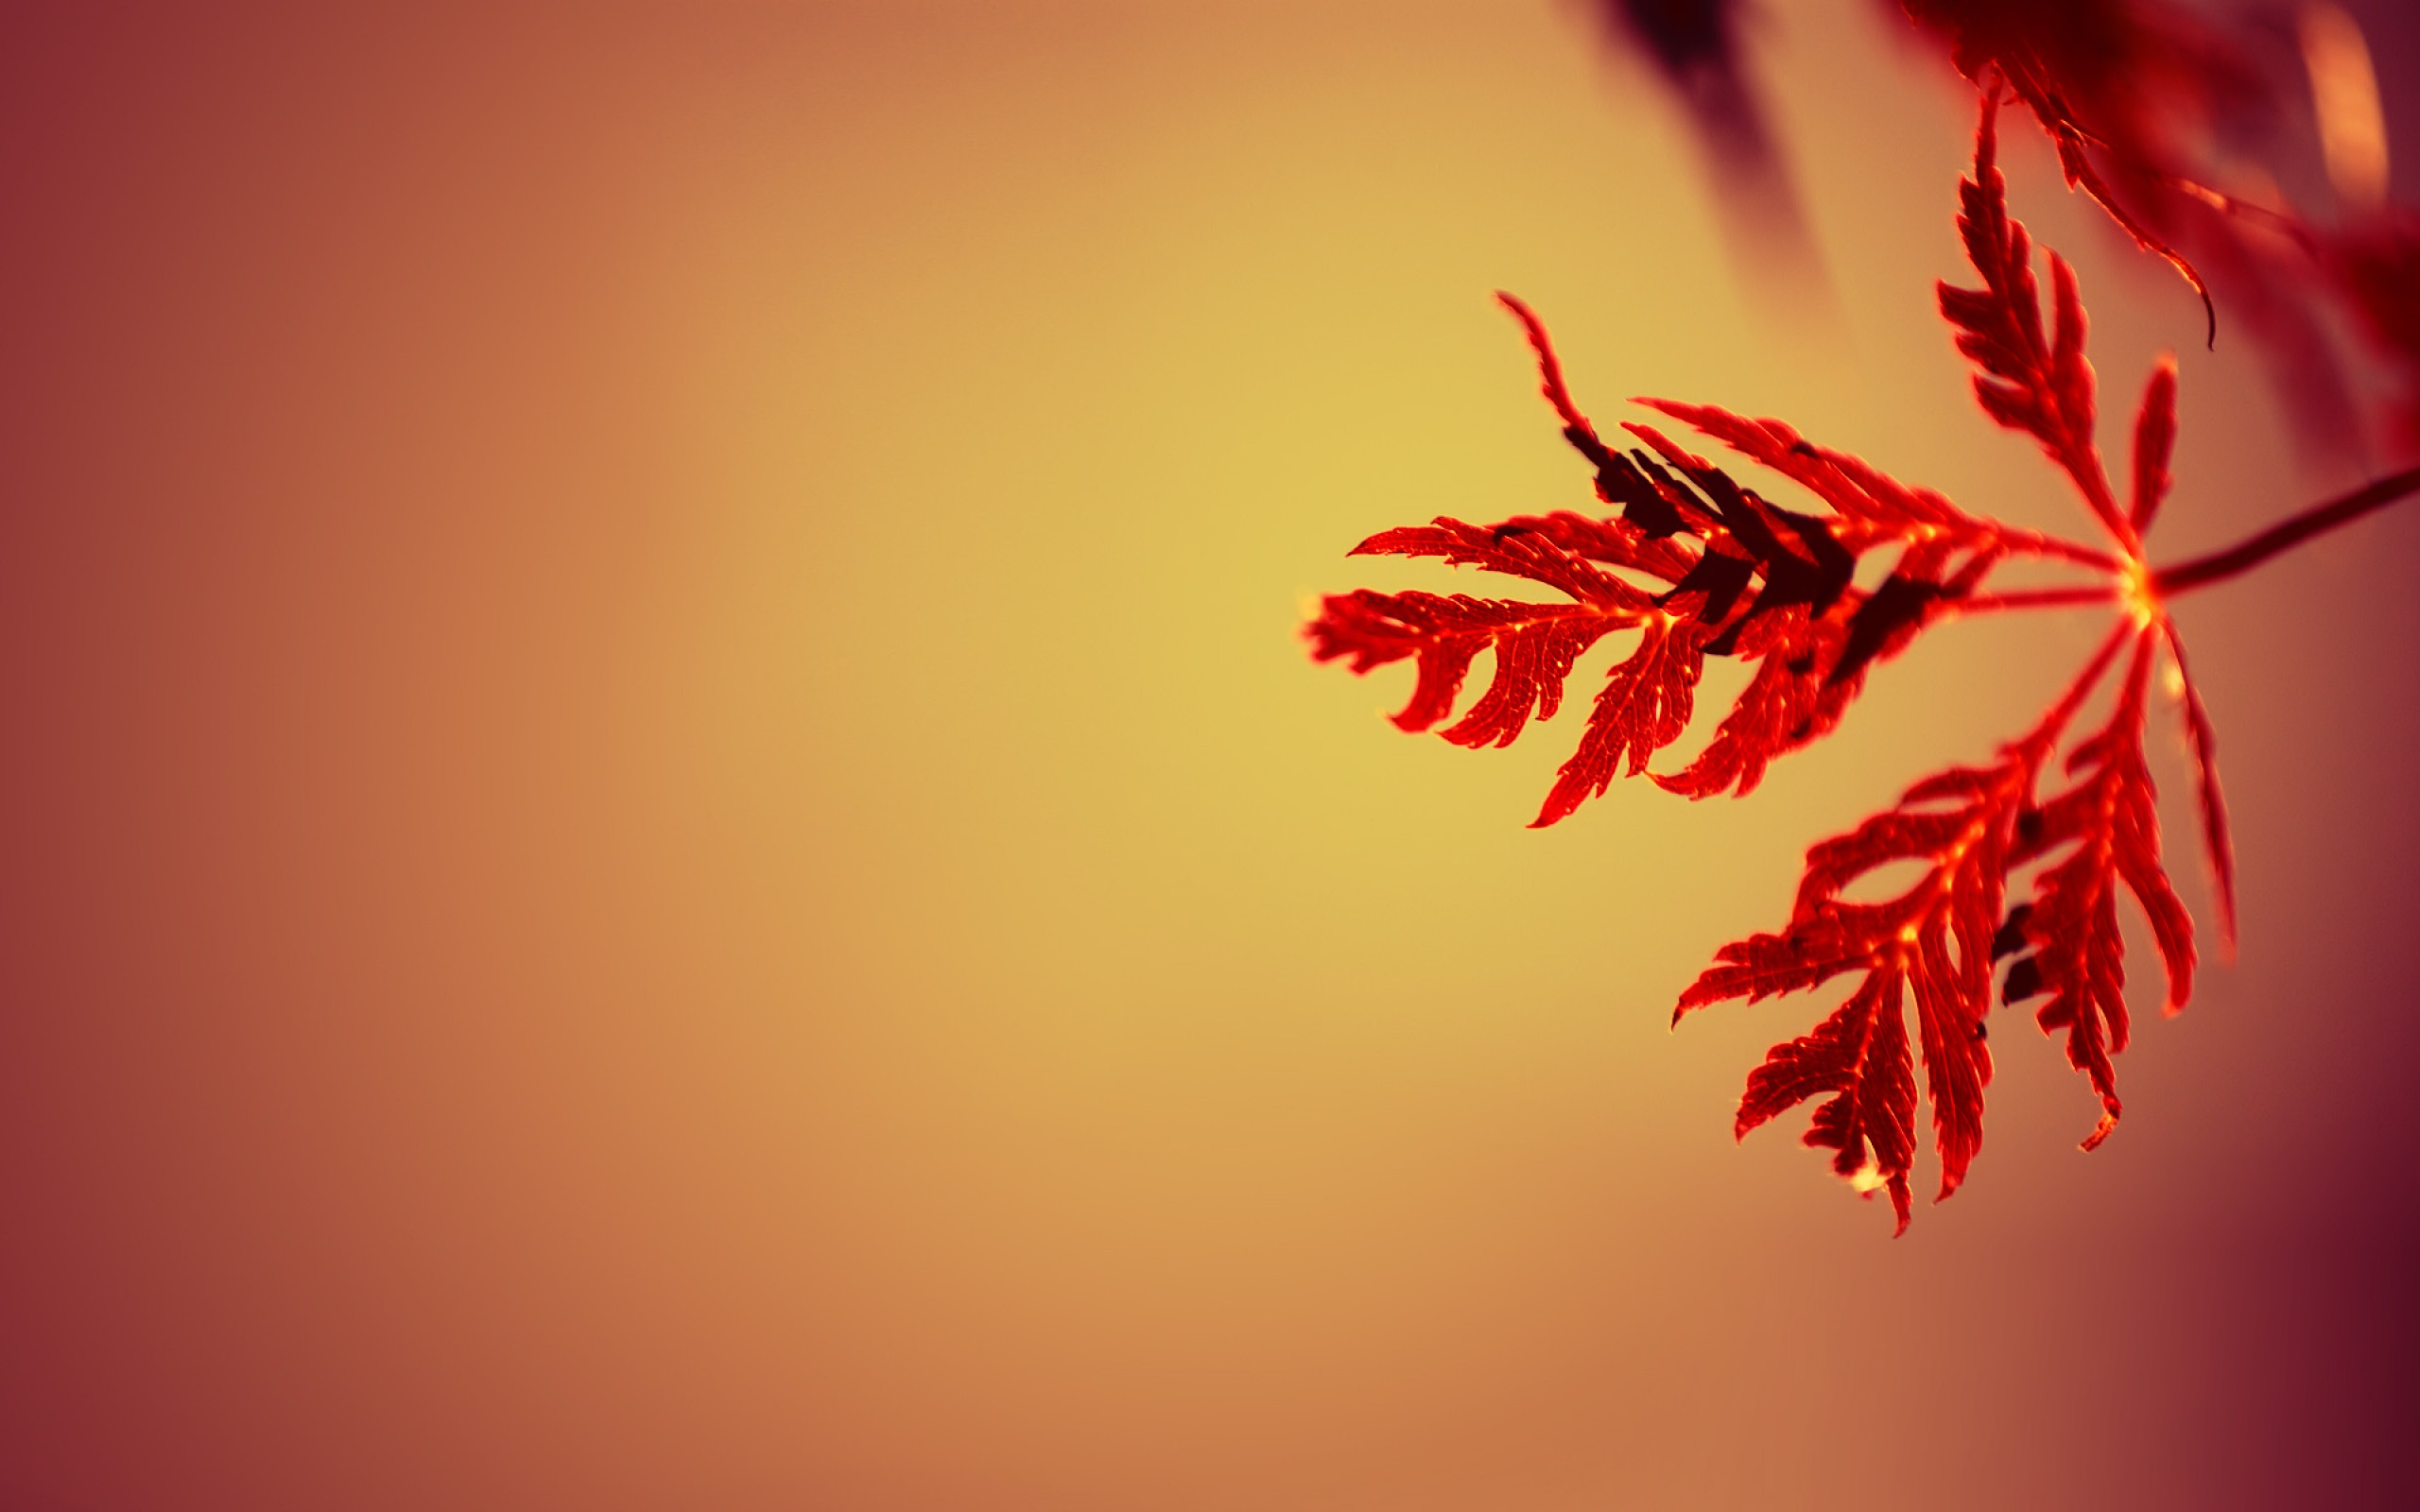 Beautiful Red Leaves Wallpaper